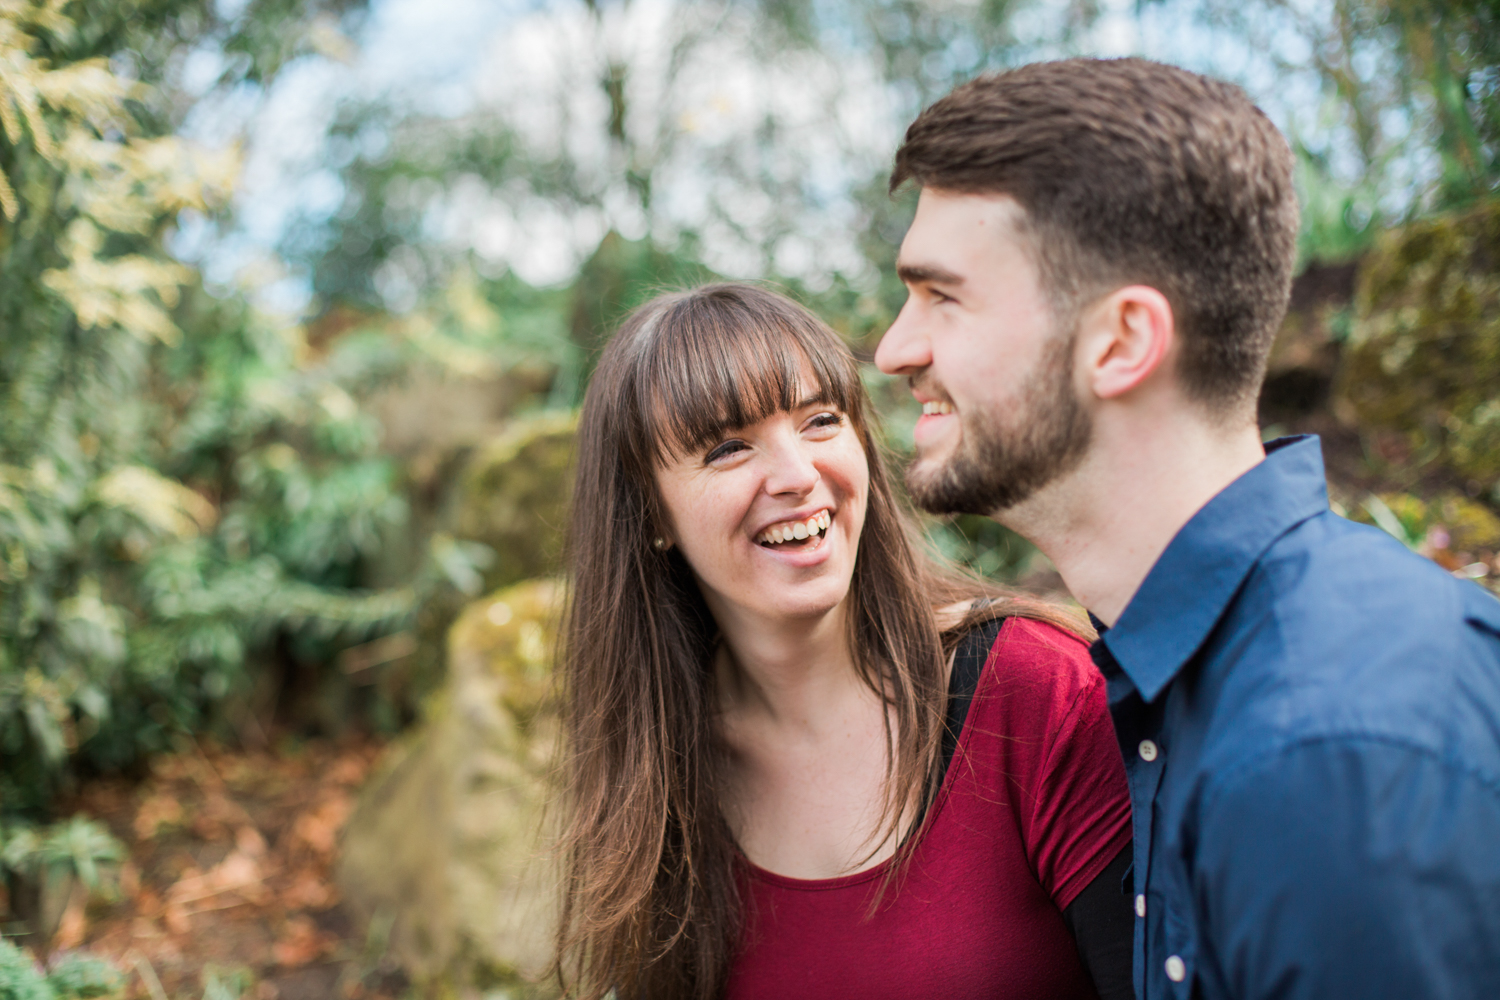 Sophie Evans Photography, Alice & Nathanael Botanical Gardens Engagement Shoot. Warwickshire Wedding Photographer (29).jpg